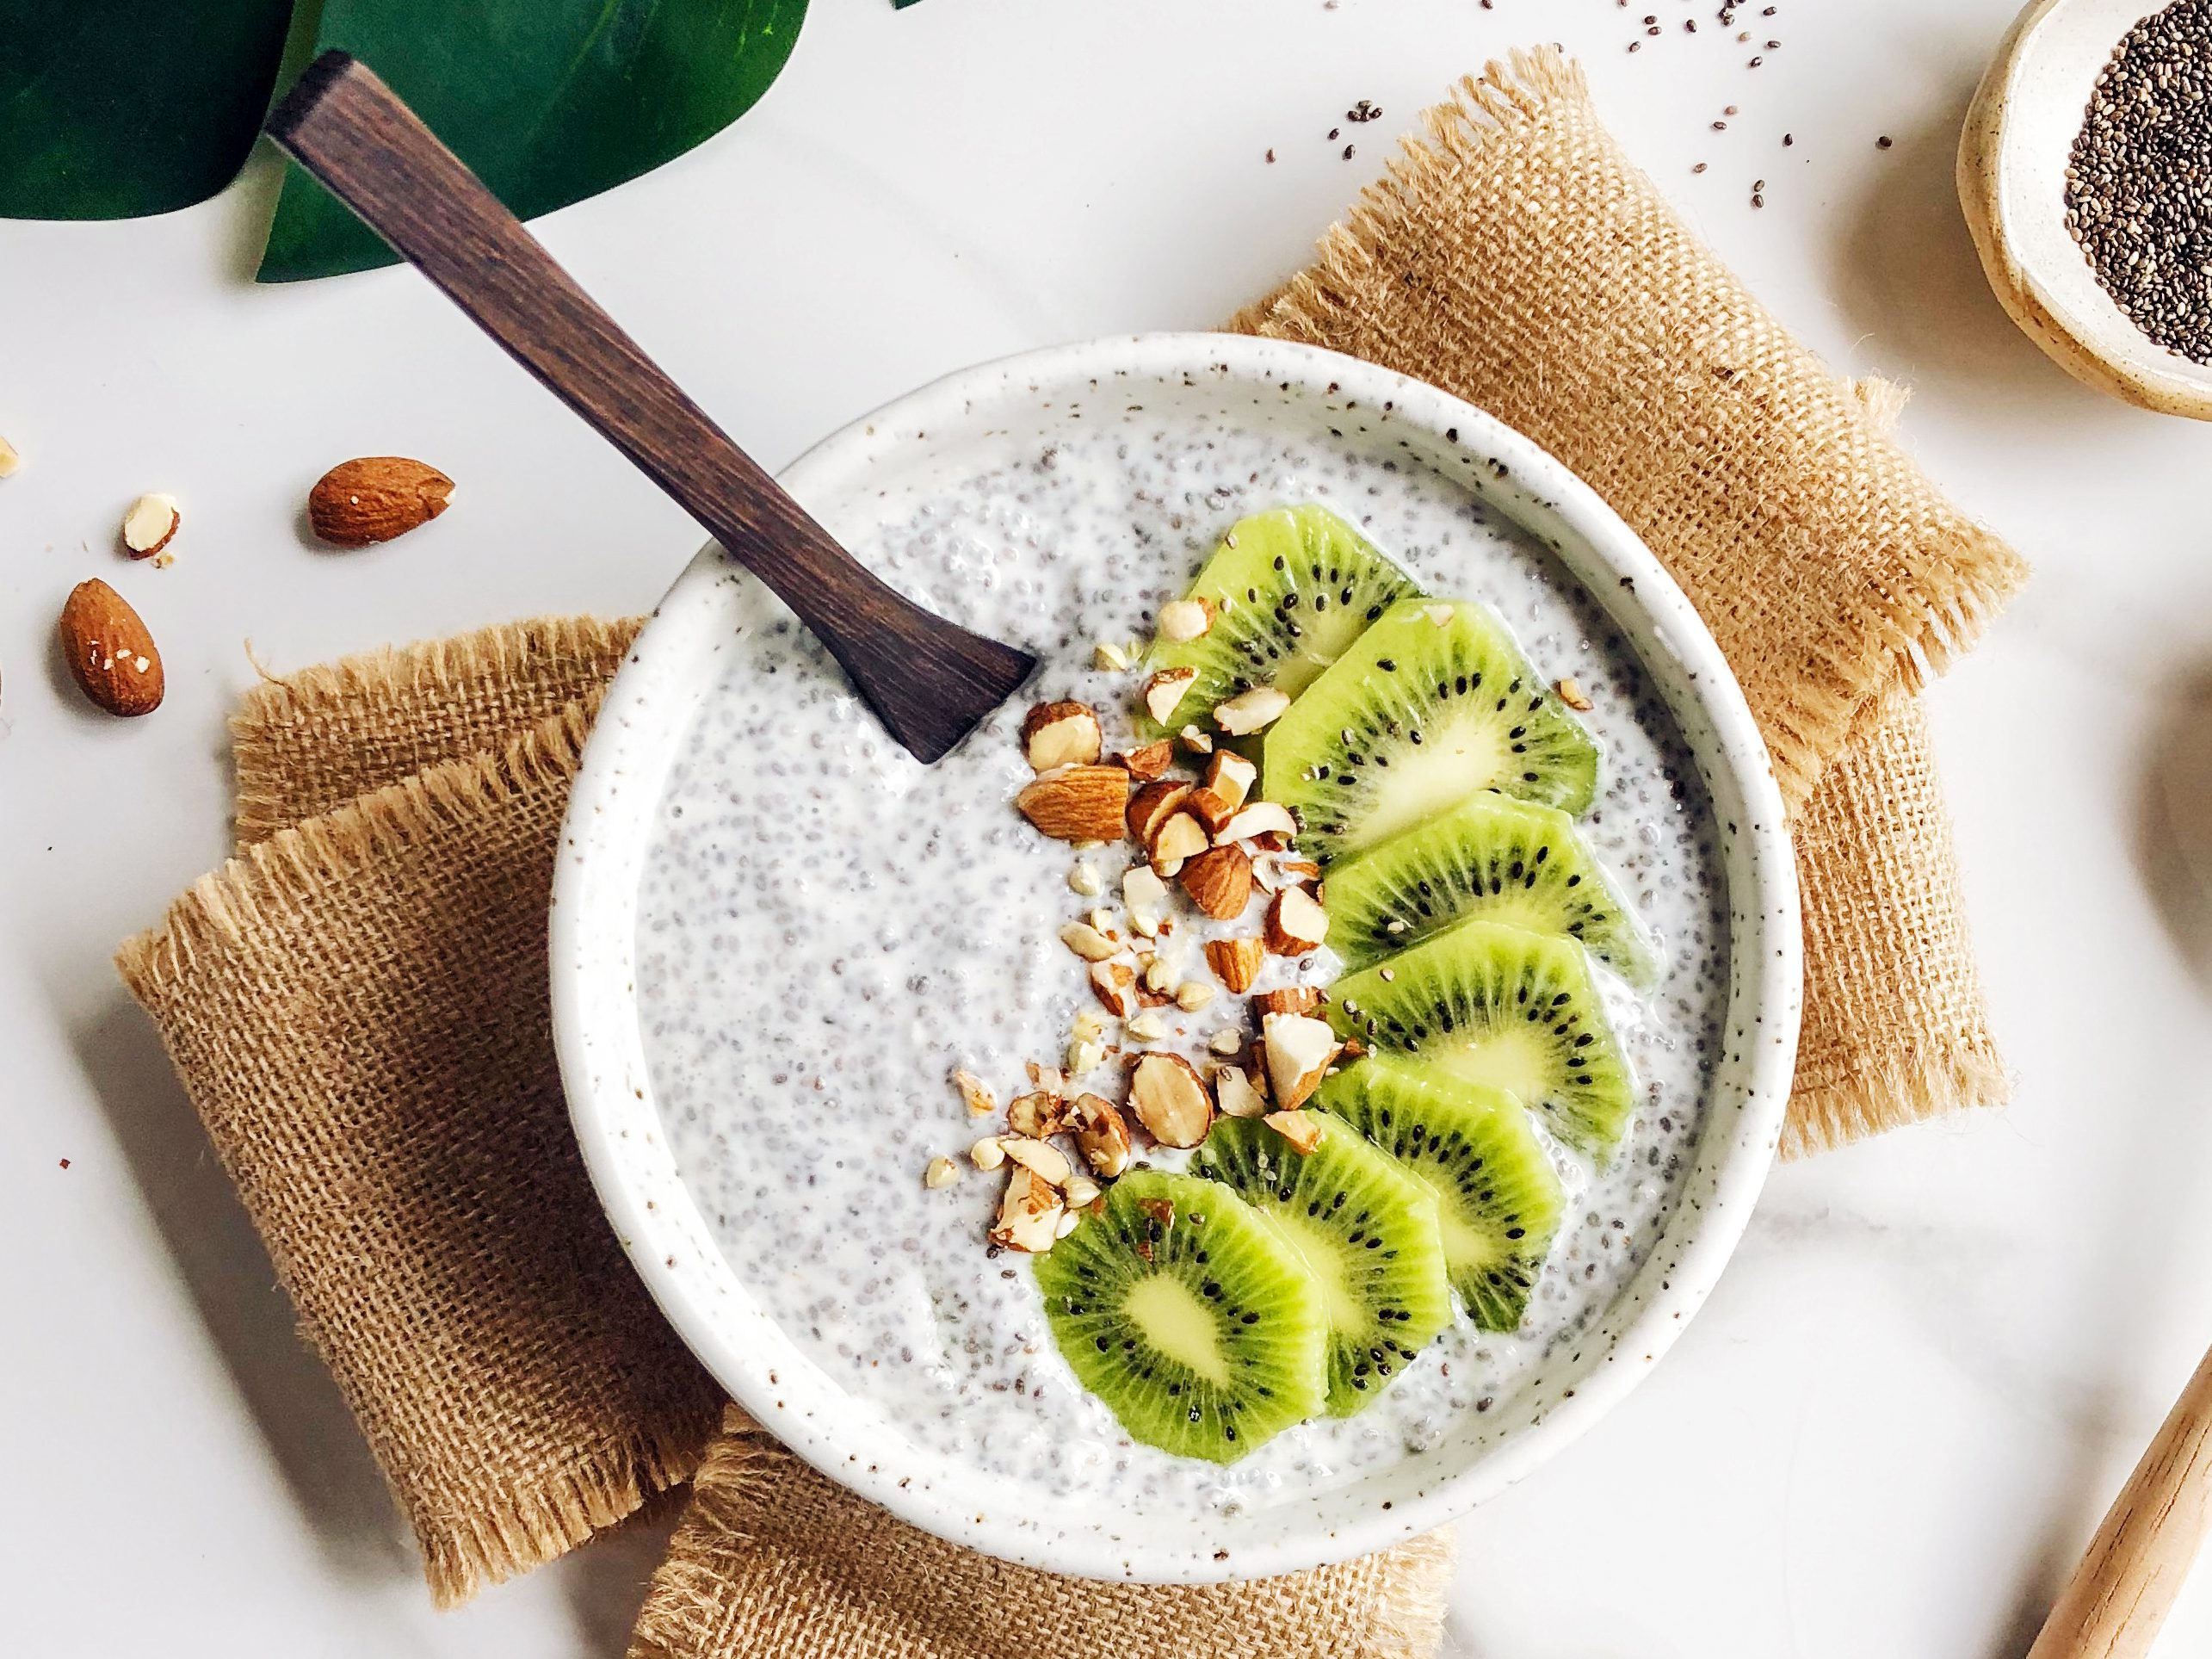 Chia seed pudding from Sophie Guidolin recipes with kiwi and crushed nuts in a white bowl